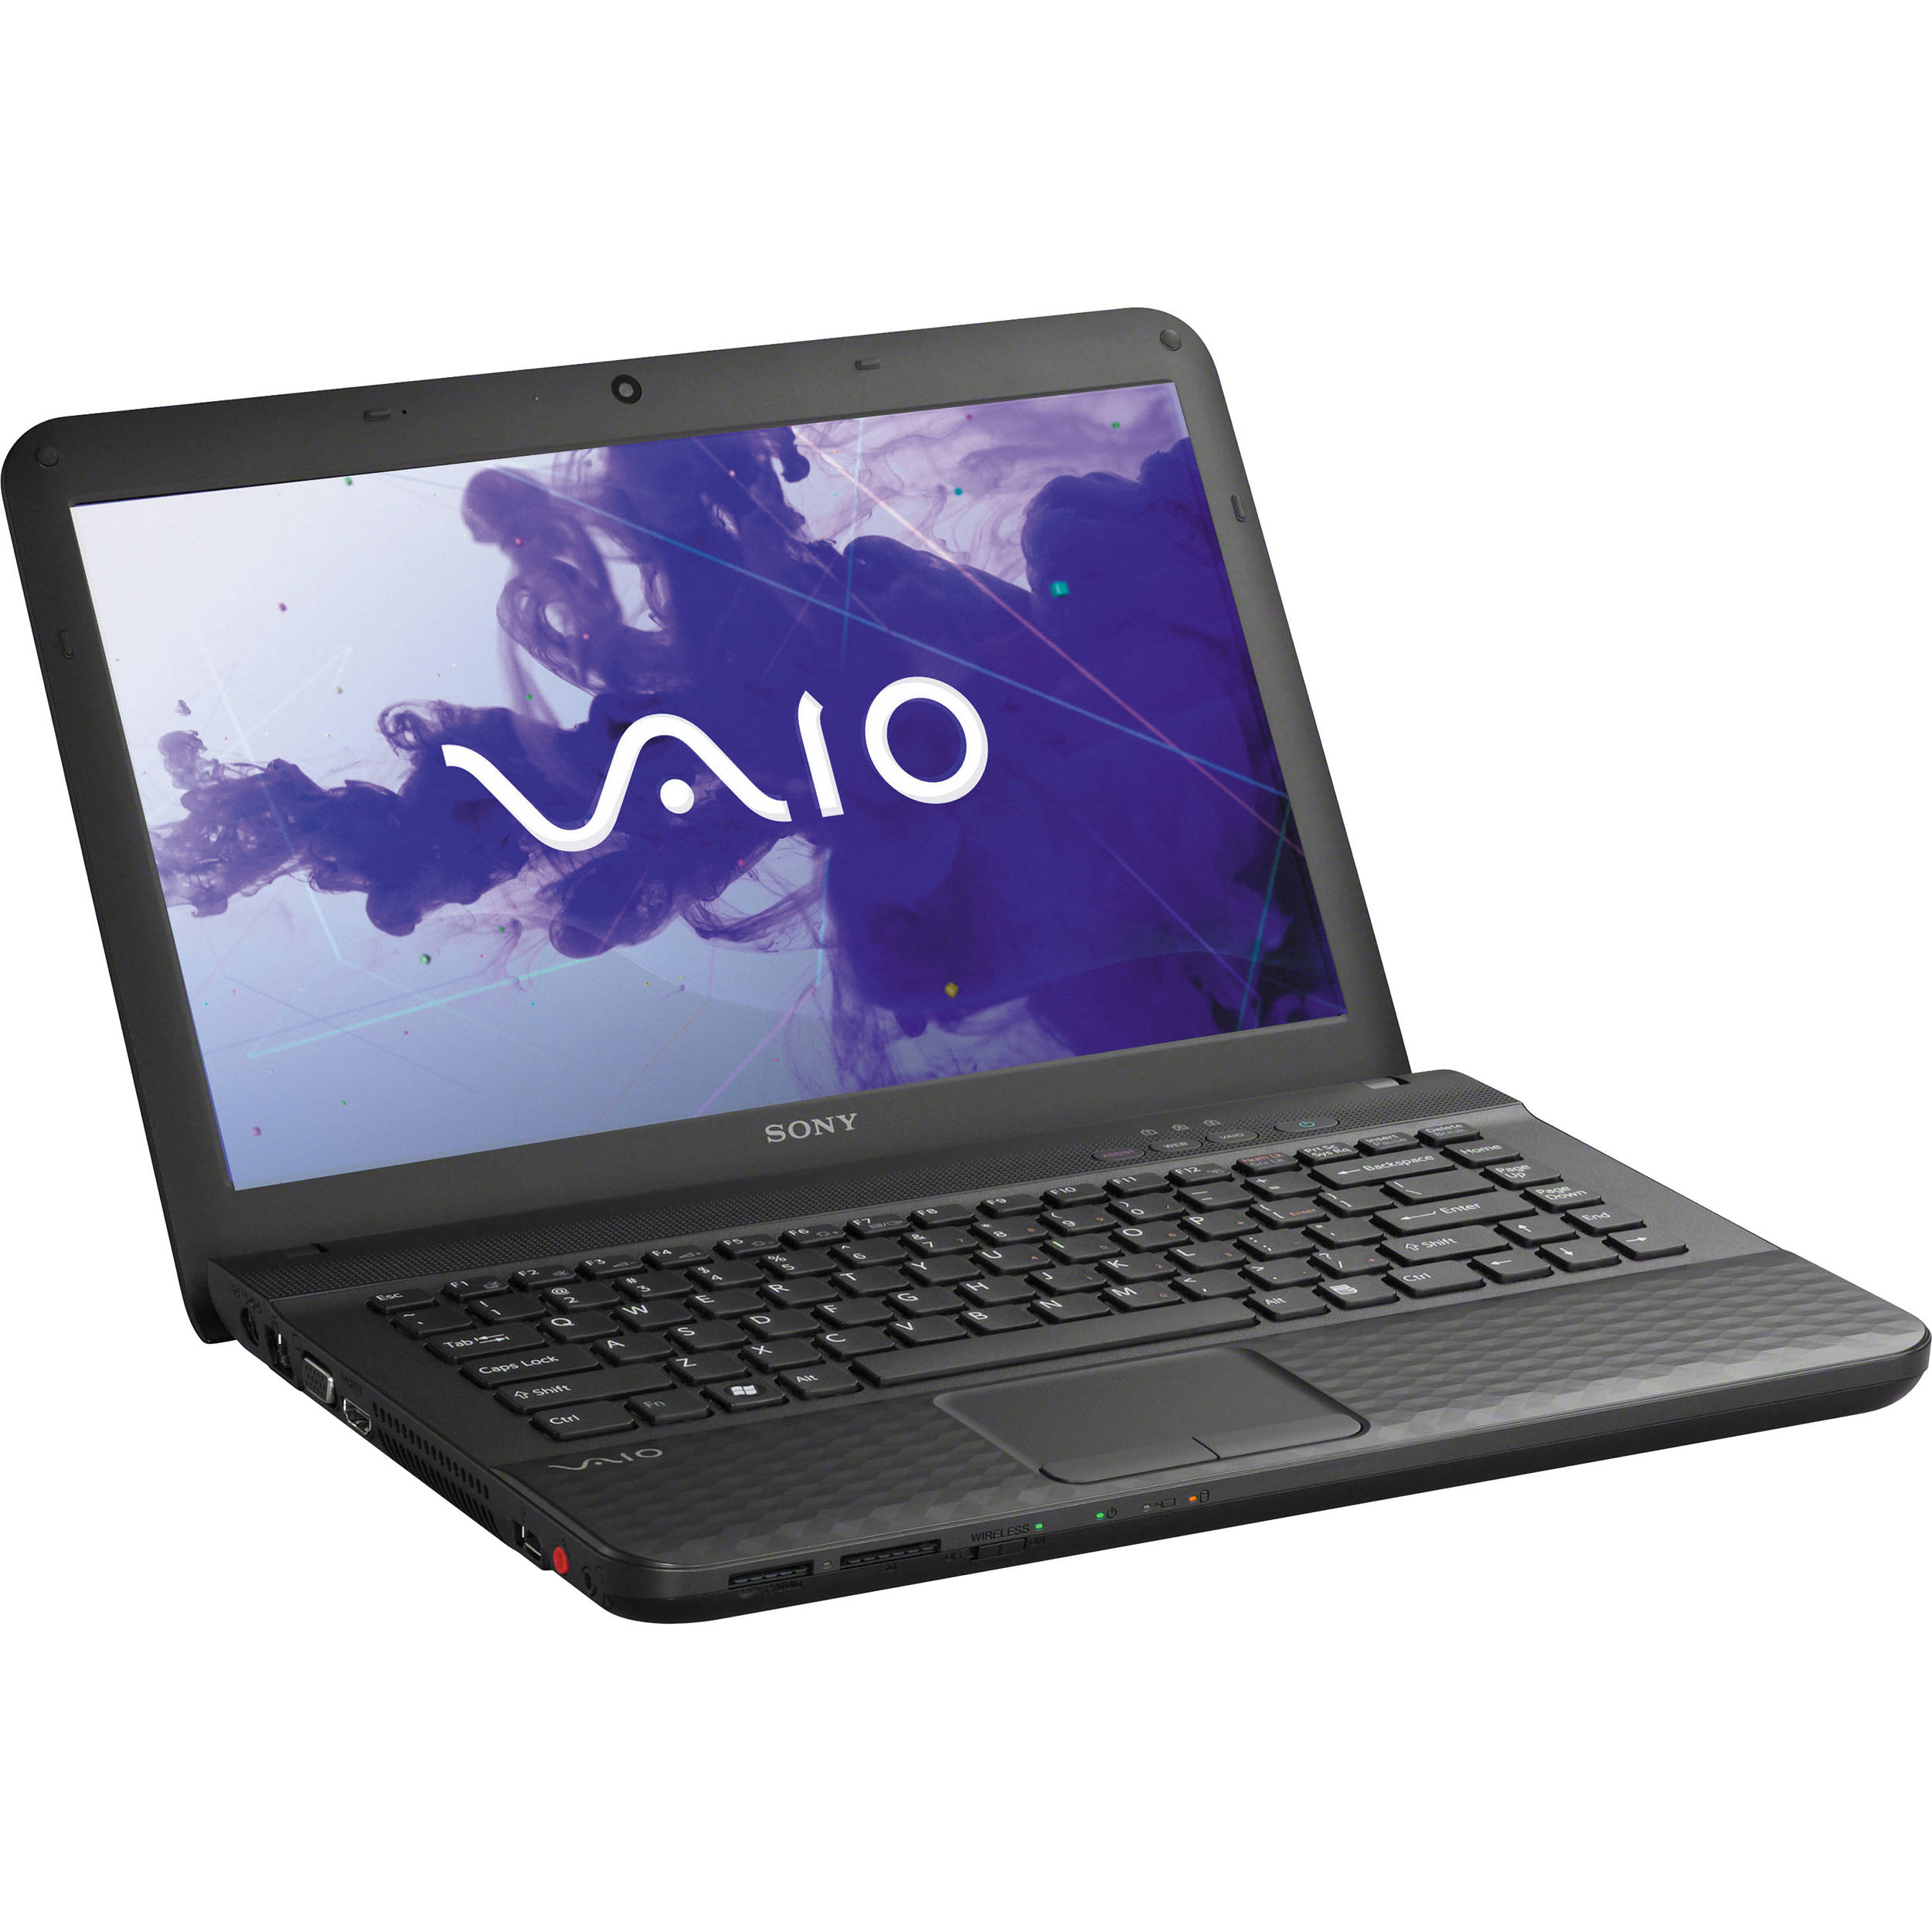 Sony Vaio VPCEG23FX Camera Driver Windows